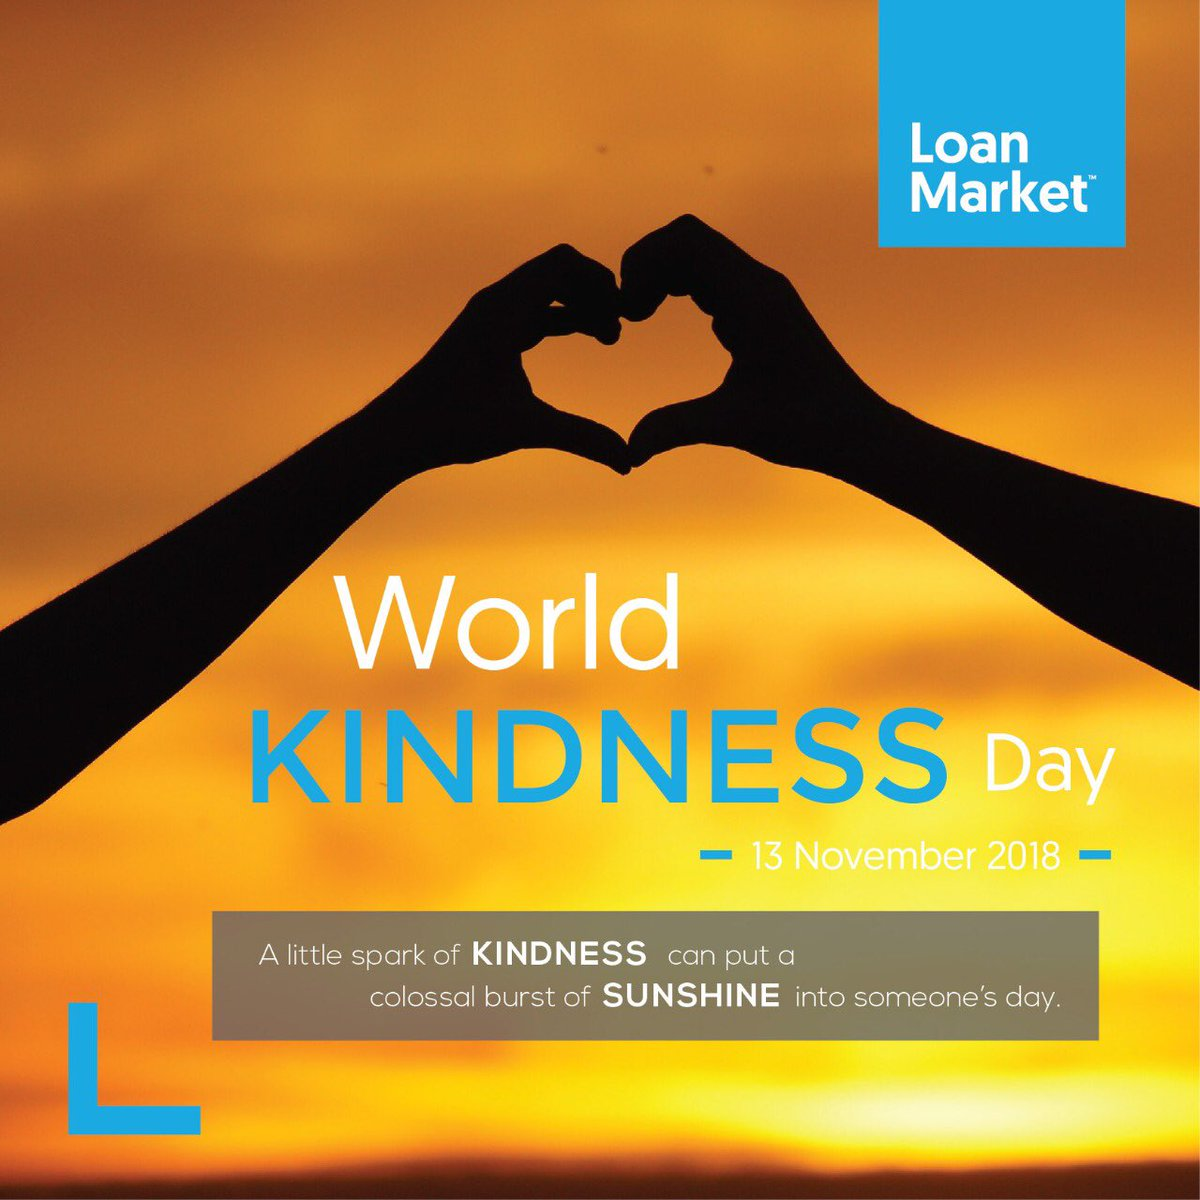 A little spark of kindness can put a colossal burst of sunshine into someone's day.  On World Kindness Day, we wish that life always reaches out to you in many unexpectedly kind and generous ways.  #loanmarketindonesia #loanmarket #worldkindnessday2018 #kindnessday2018pic.twitter.com/JDujJ4IREj